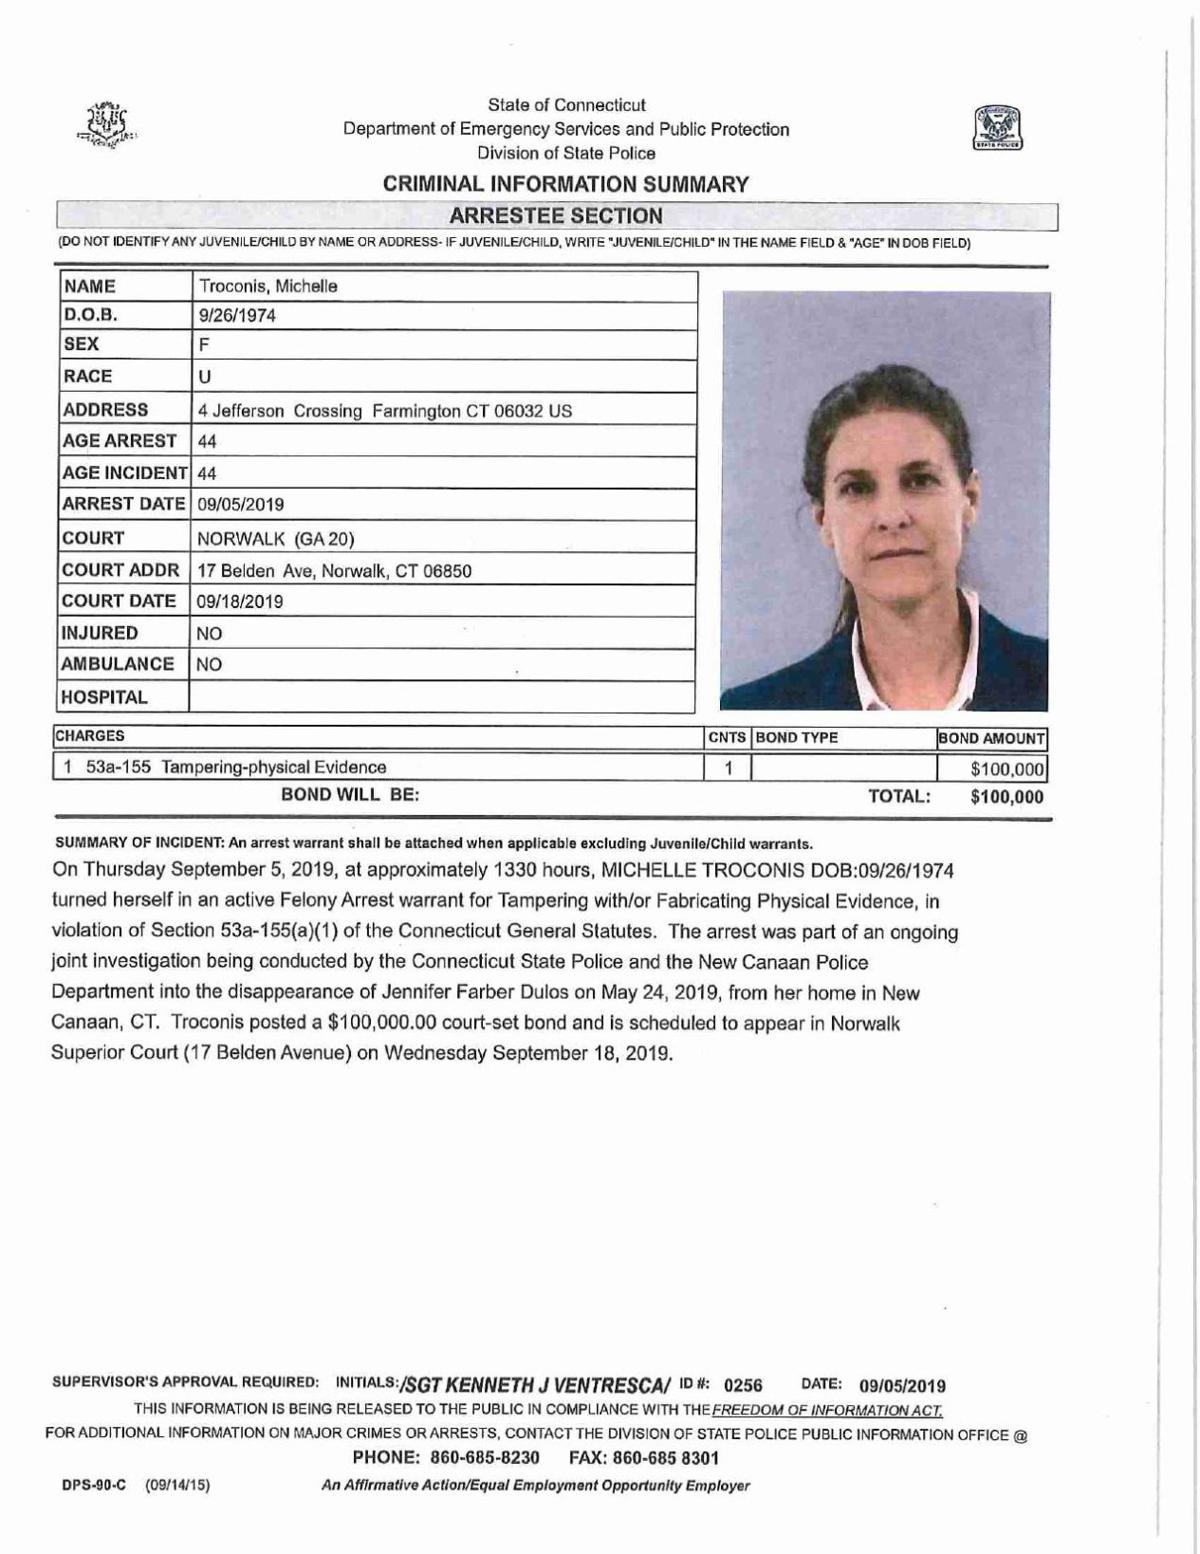 Michelle Troconis arrest warrant